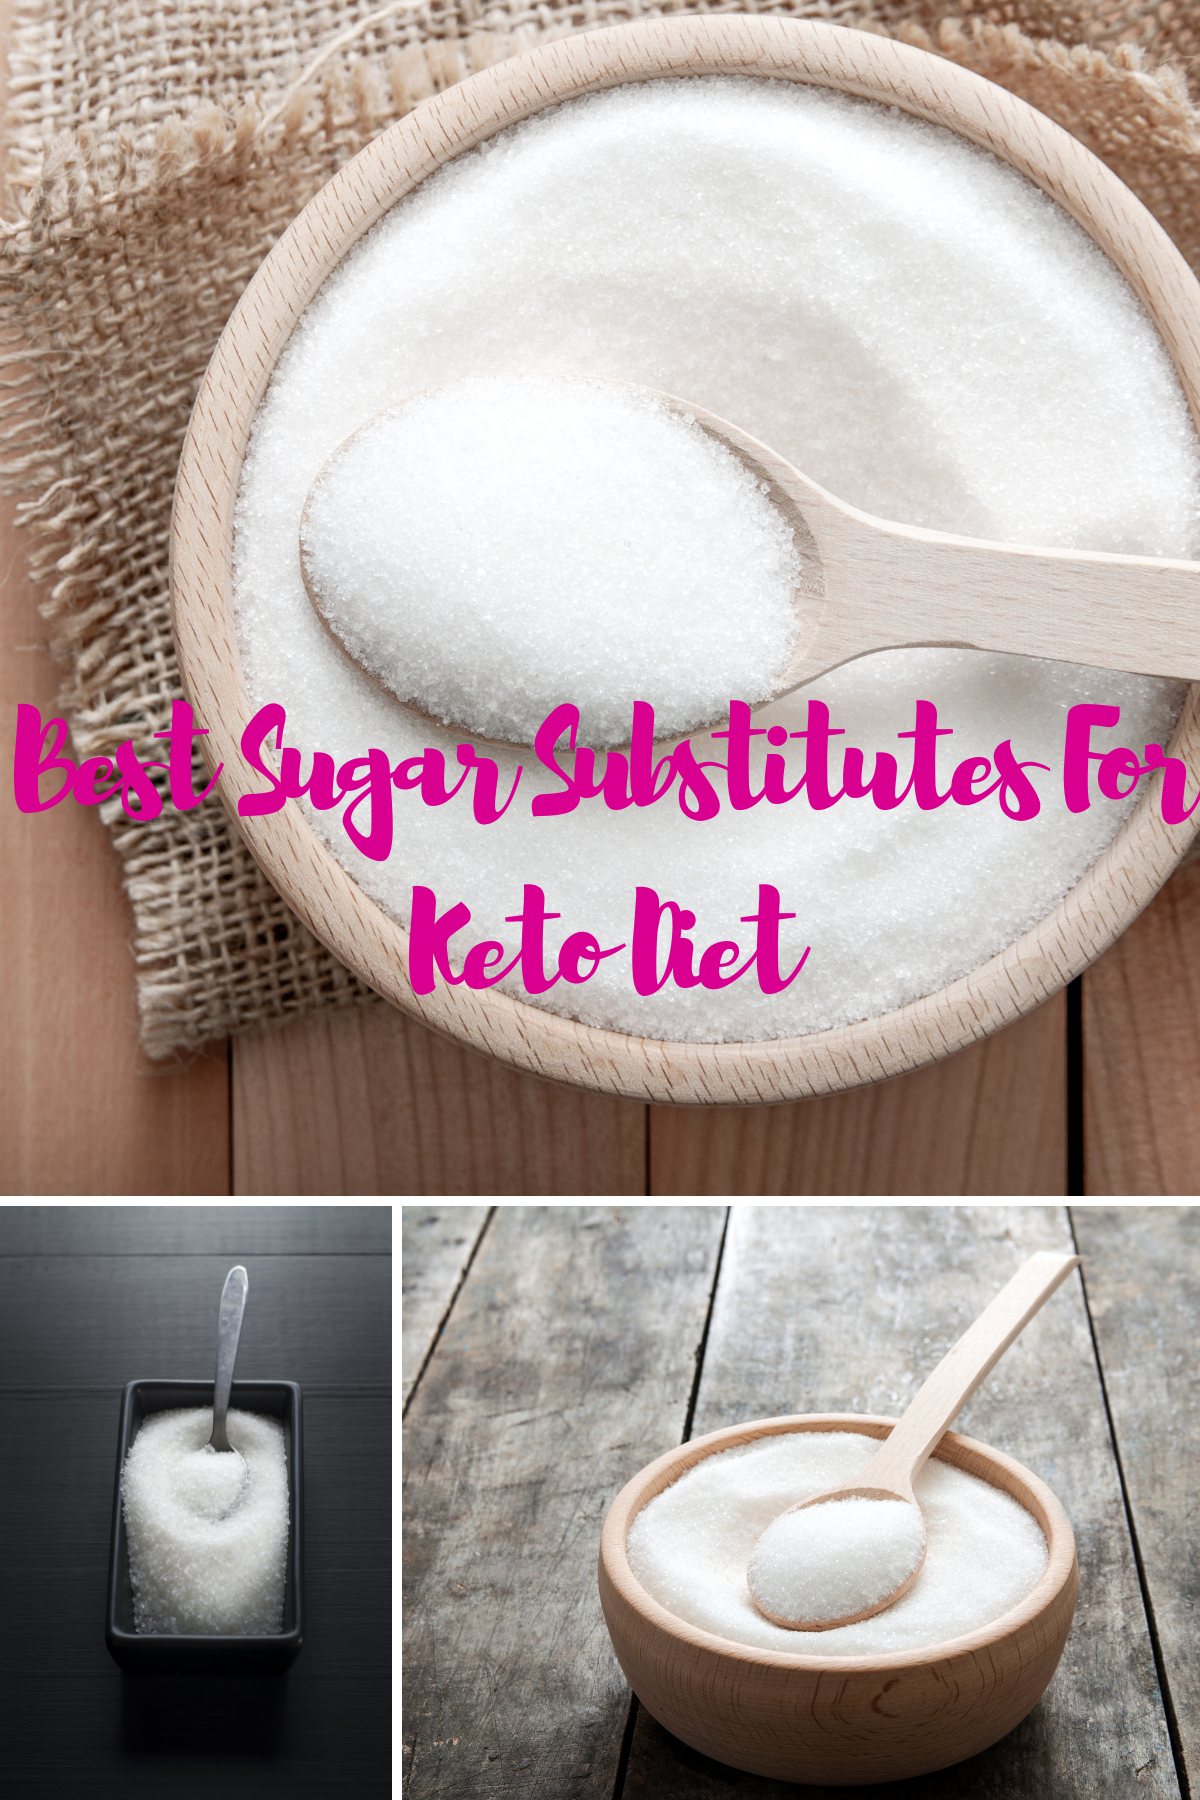 What are the best Keto sugar substitutes to incorporate into your meals without getting off track on your diet?